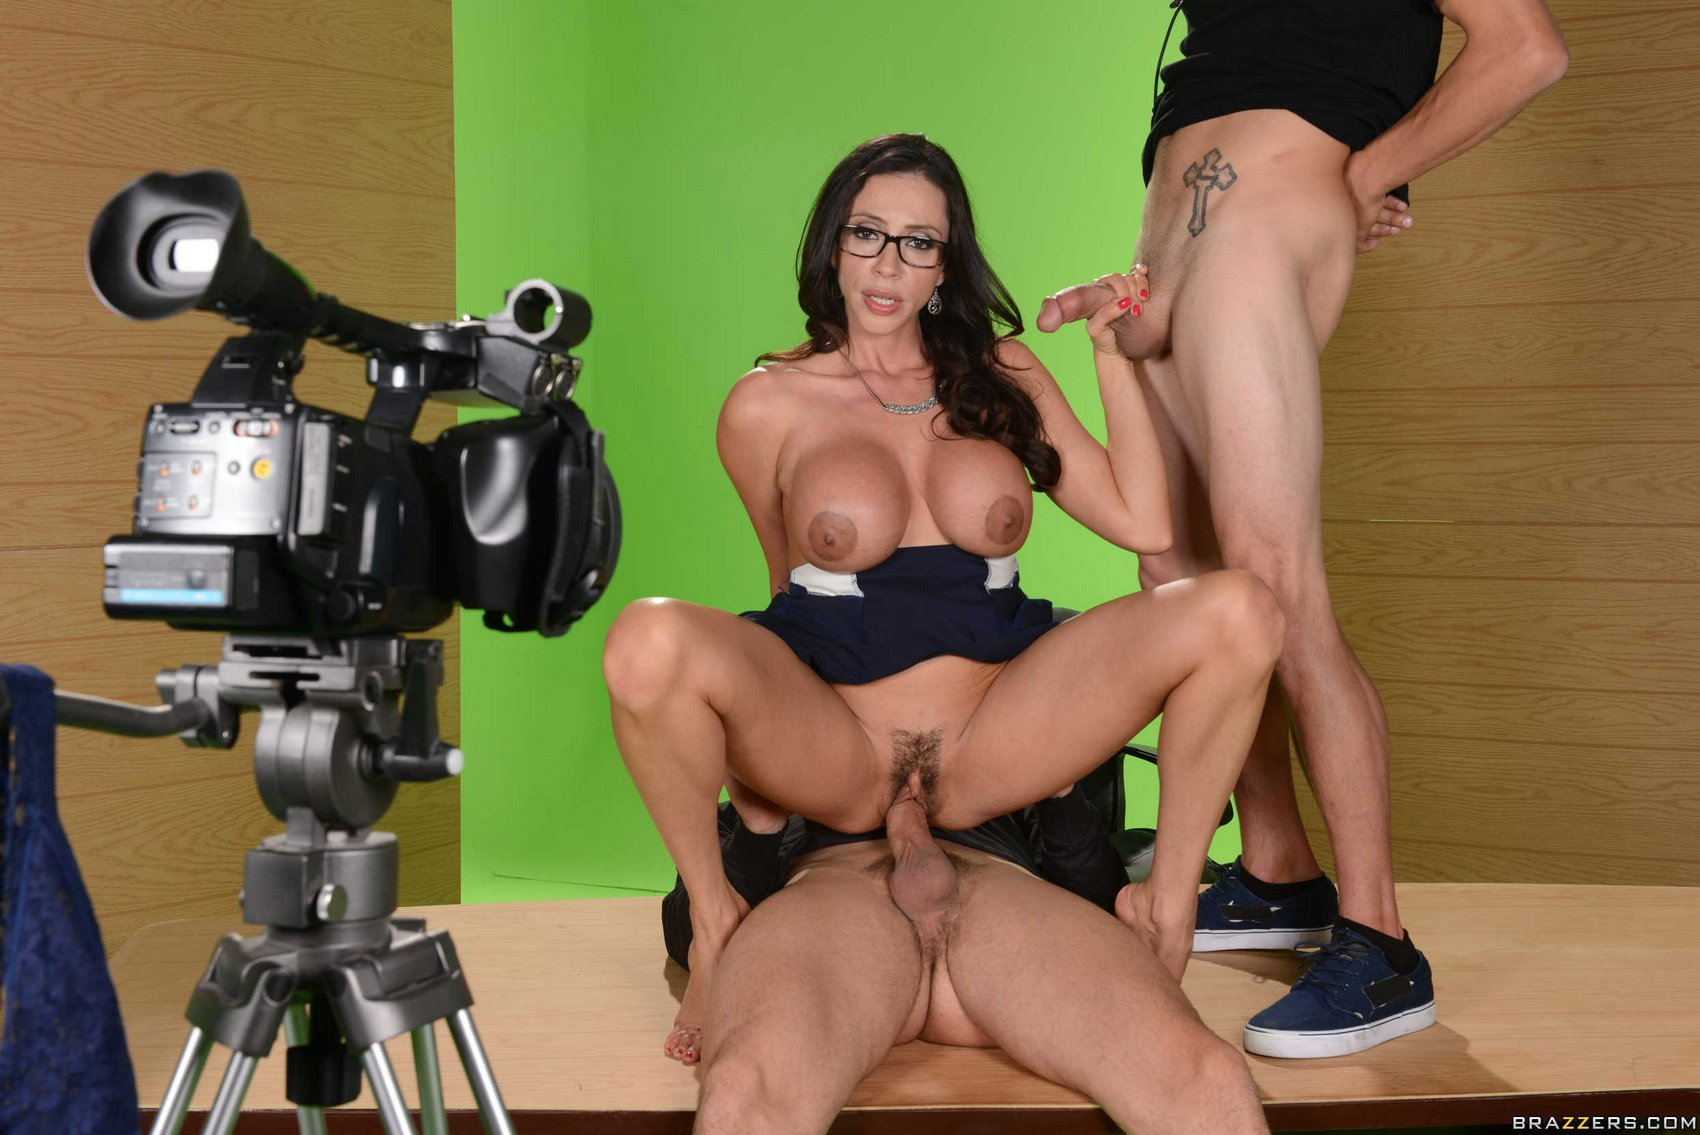 hot newscaster ariella ferrera fucking two guys in the